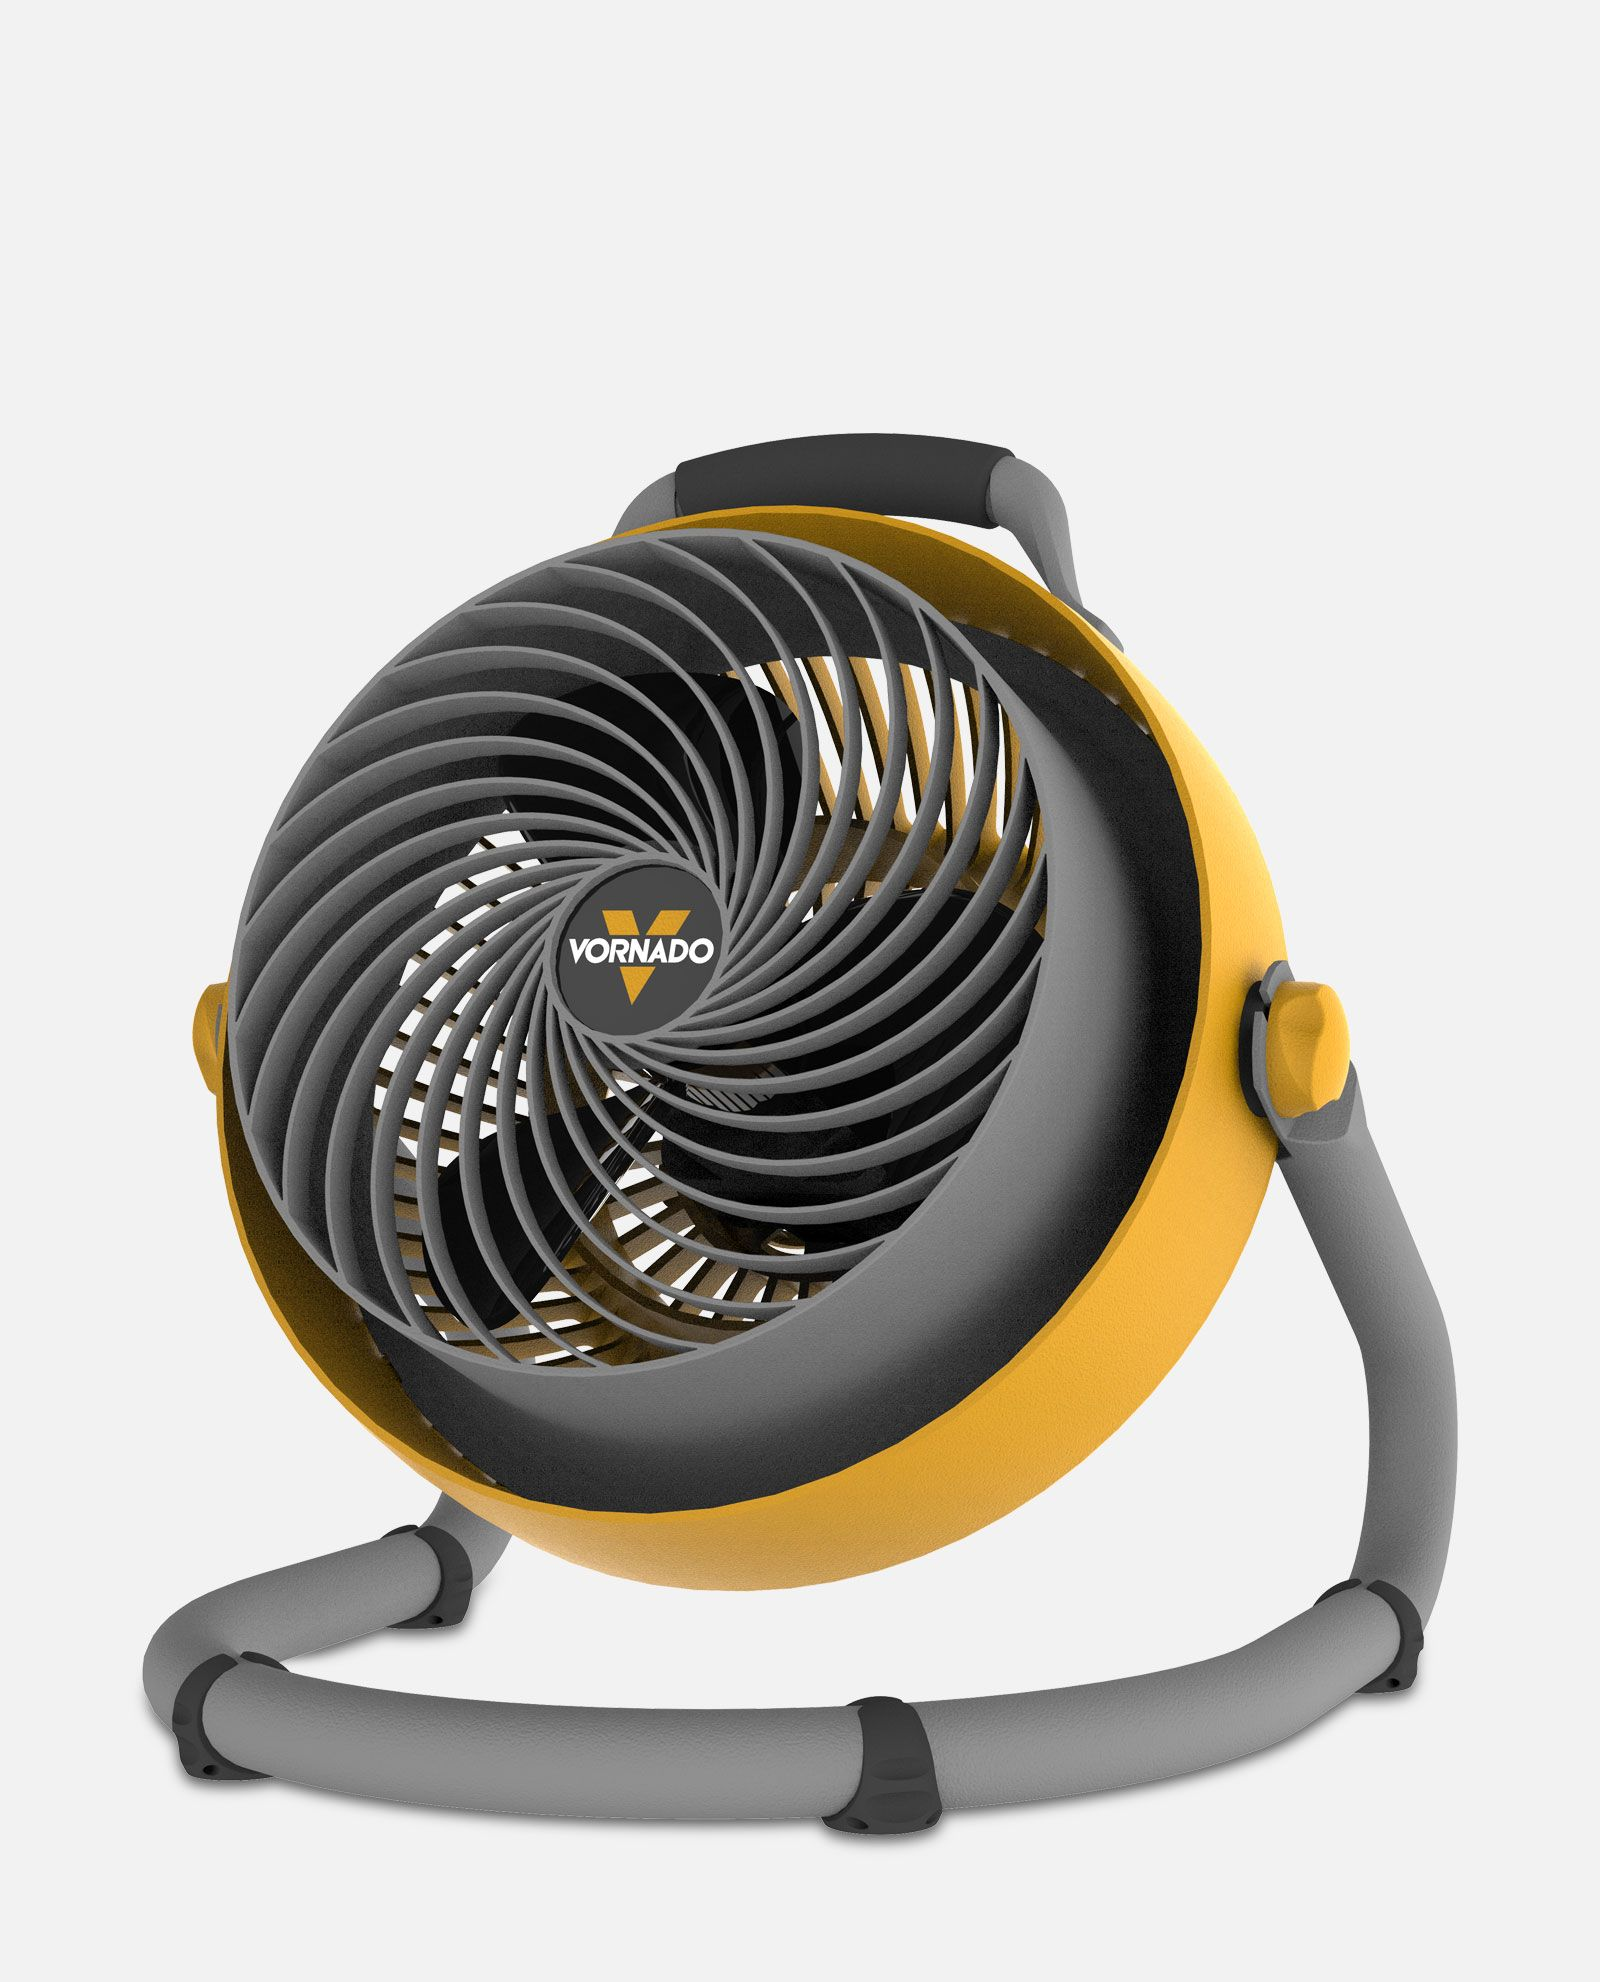 Vornado 293 Stock Image - Heavy Duty Garage Fan